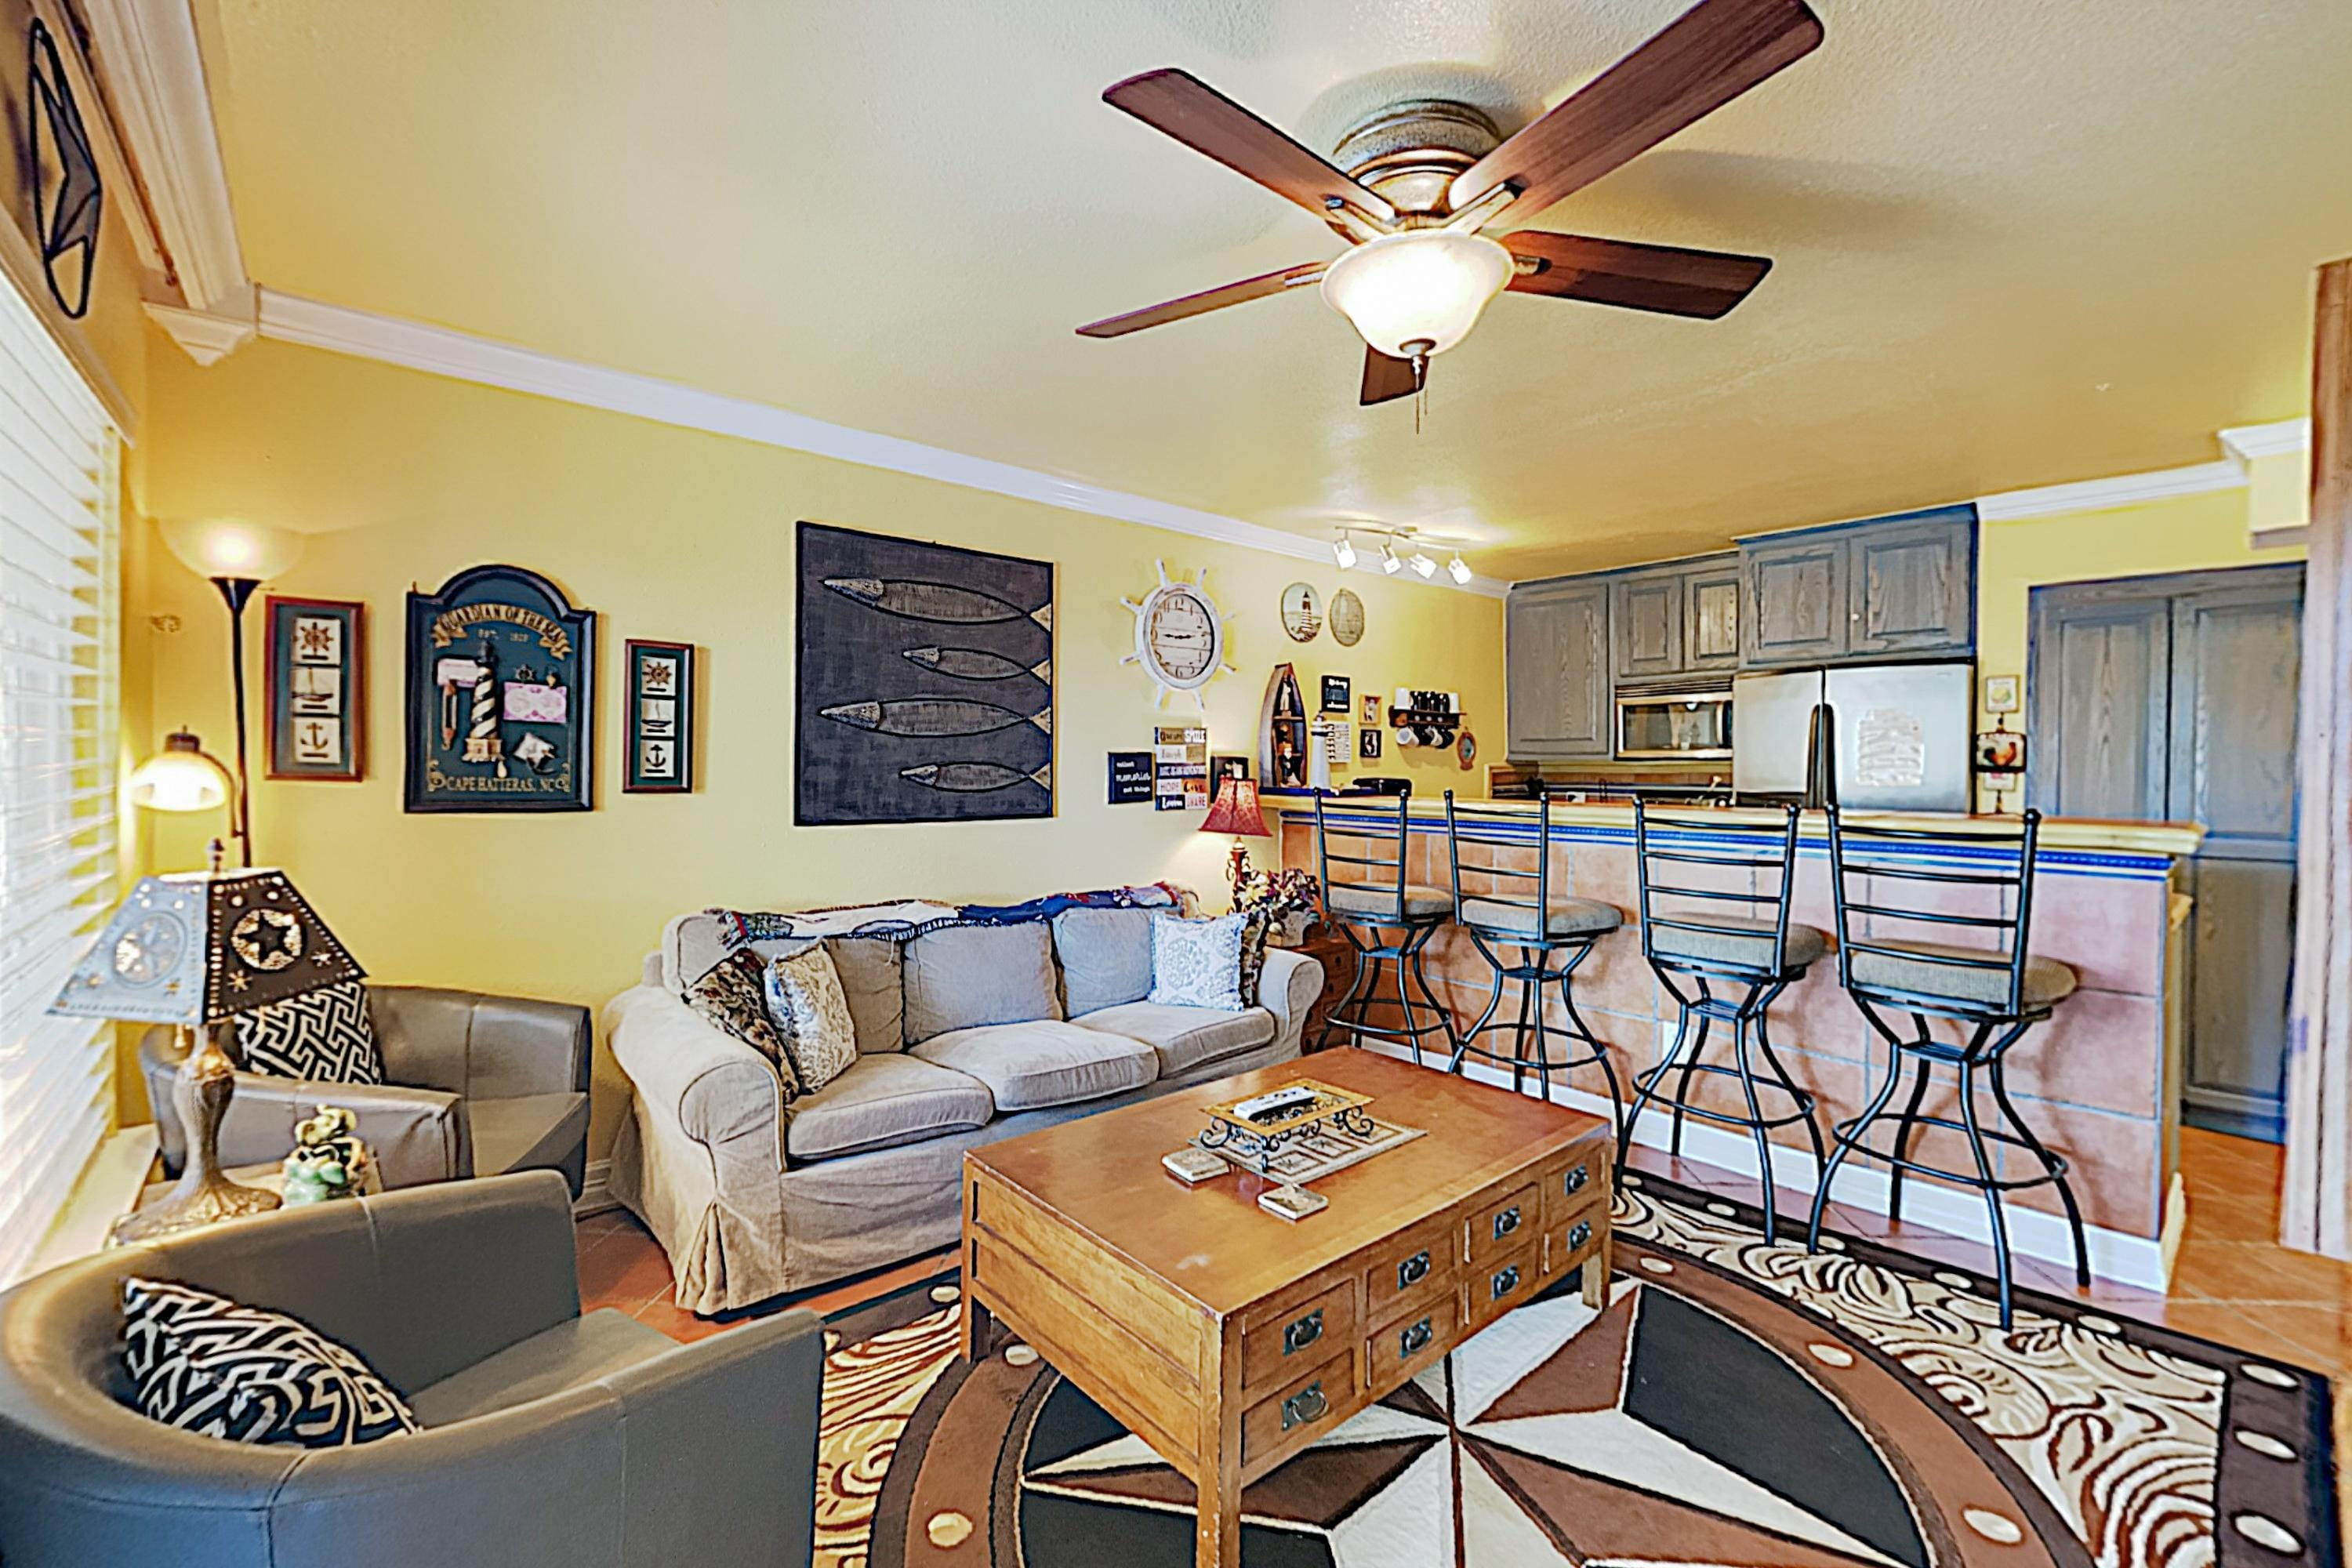 Welcome to Galveston! This Maravilla condo is professionally managed by TurnKey Vacation Rentals.